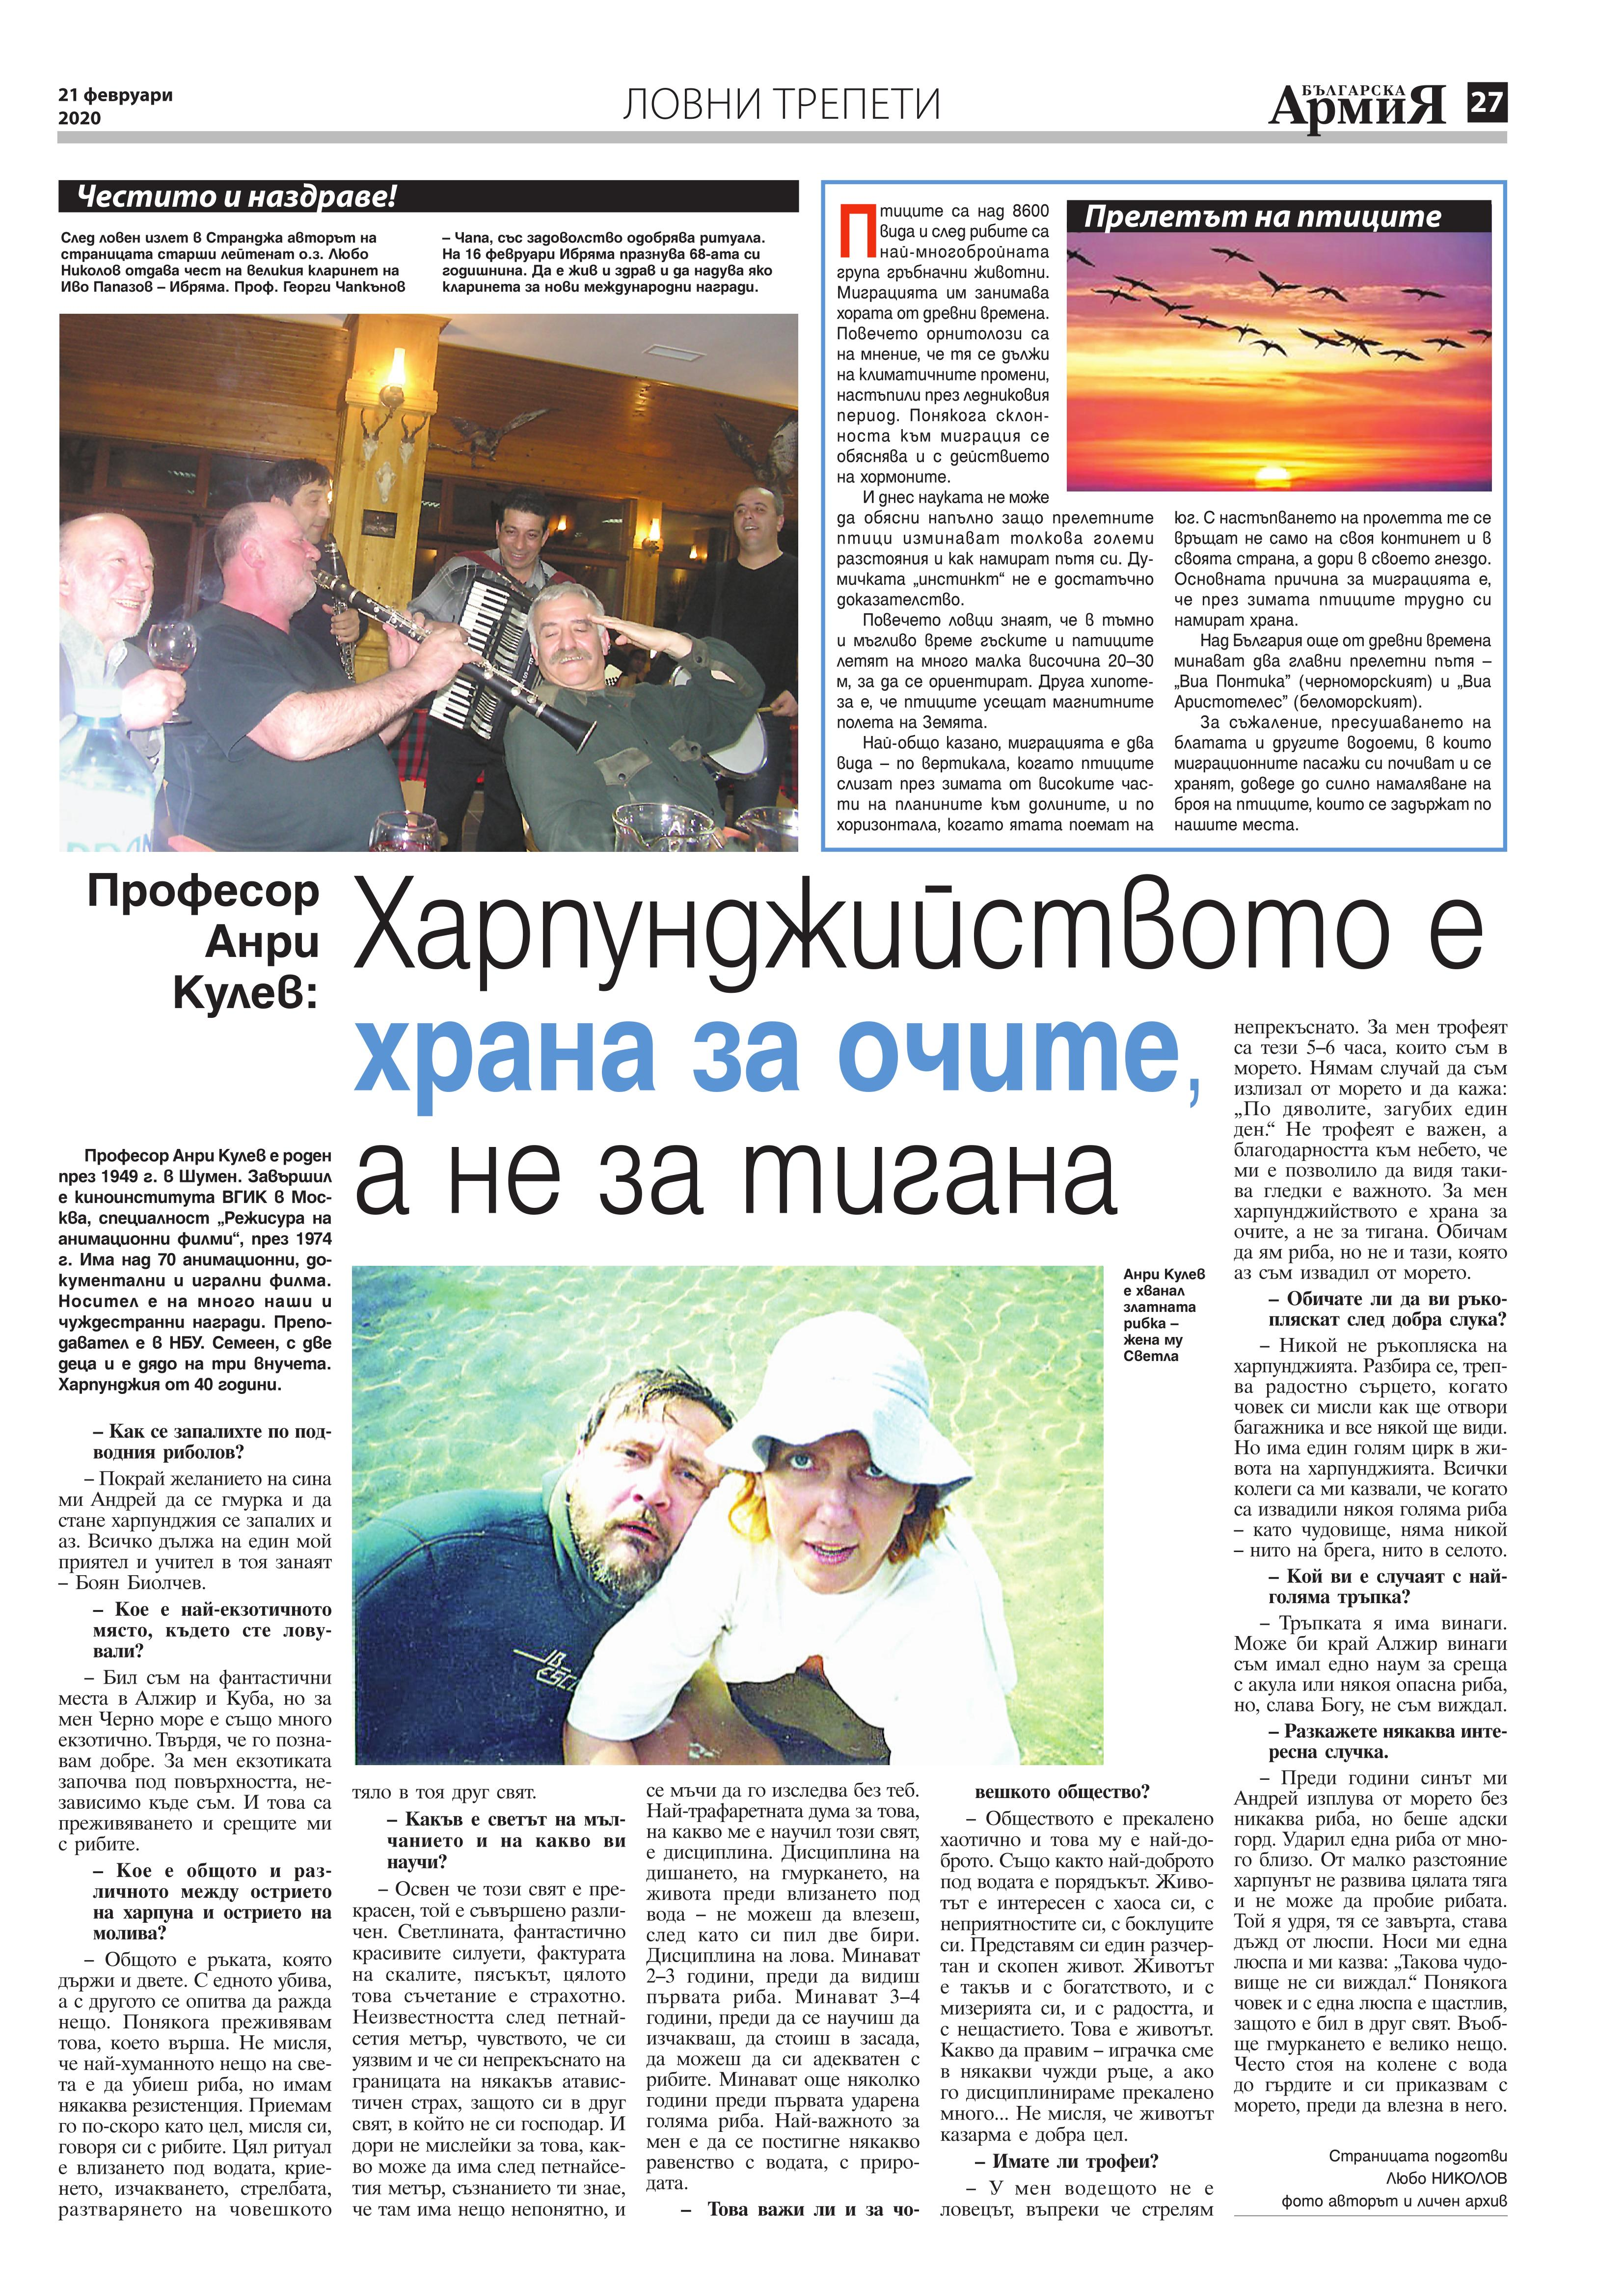 https://armymedia.bg/wp-content/uploads/2015/06/27.page1_-107.jpg